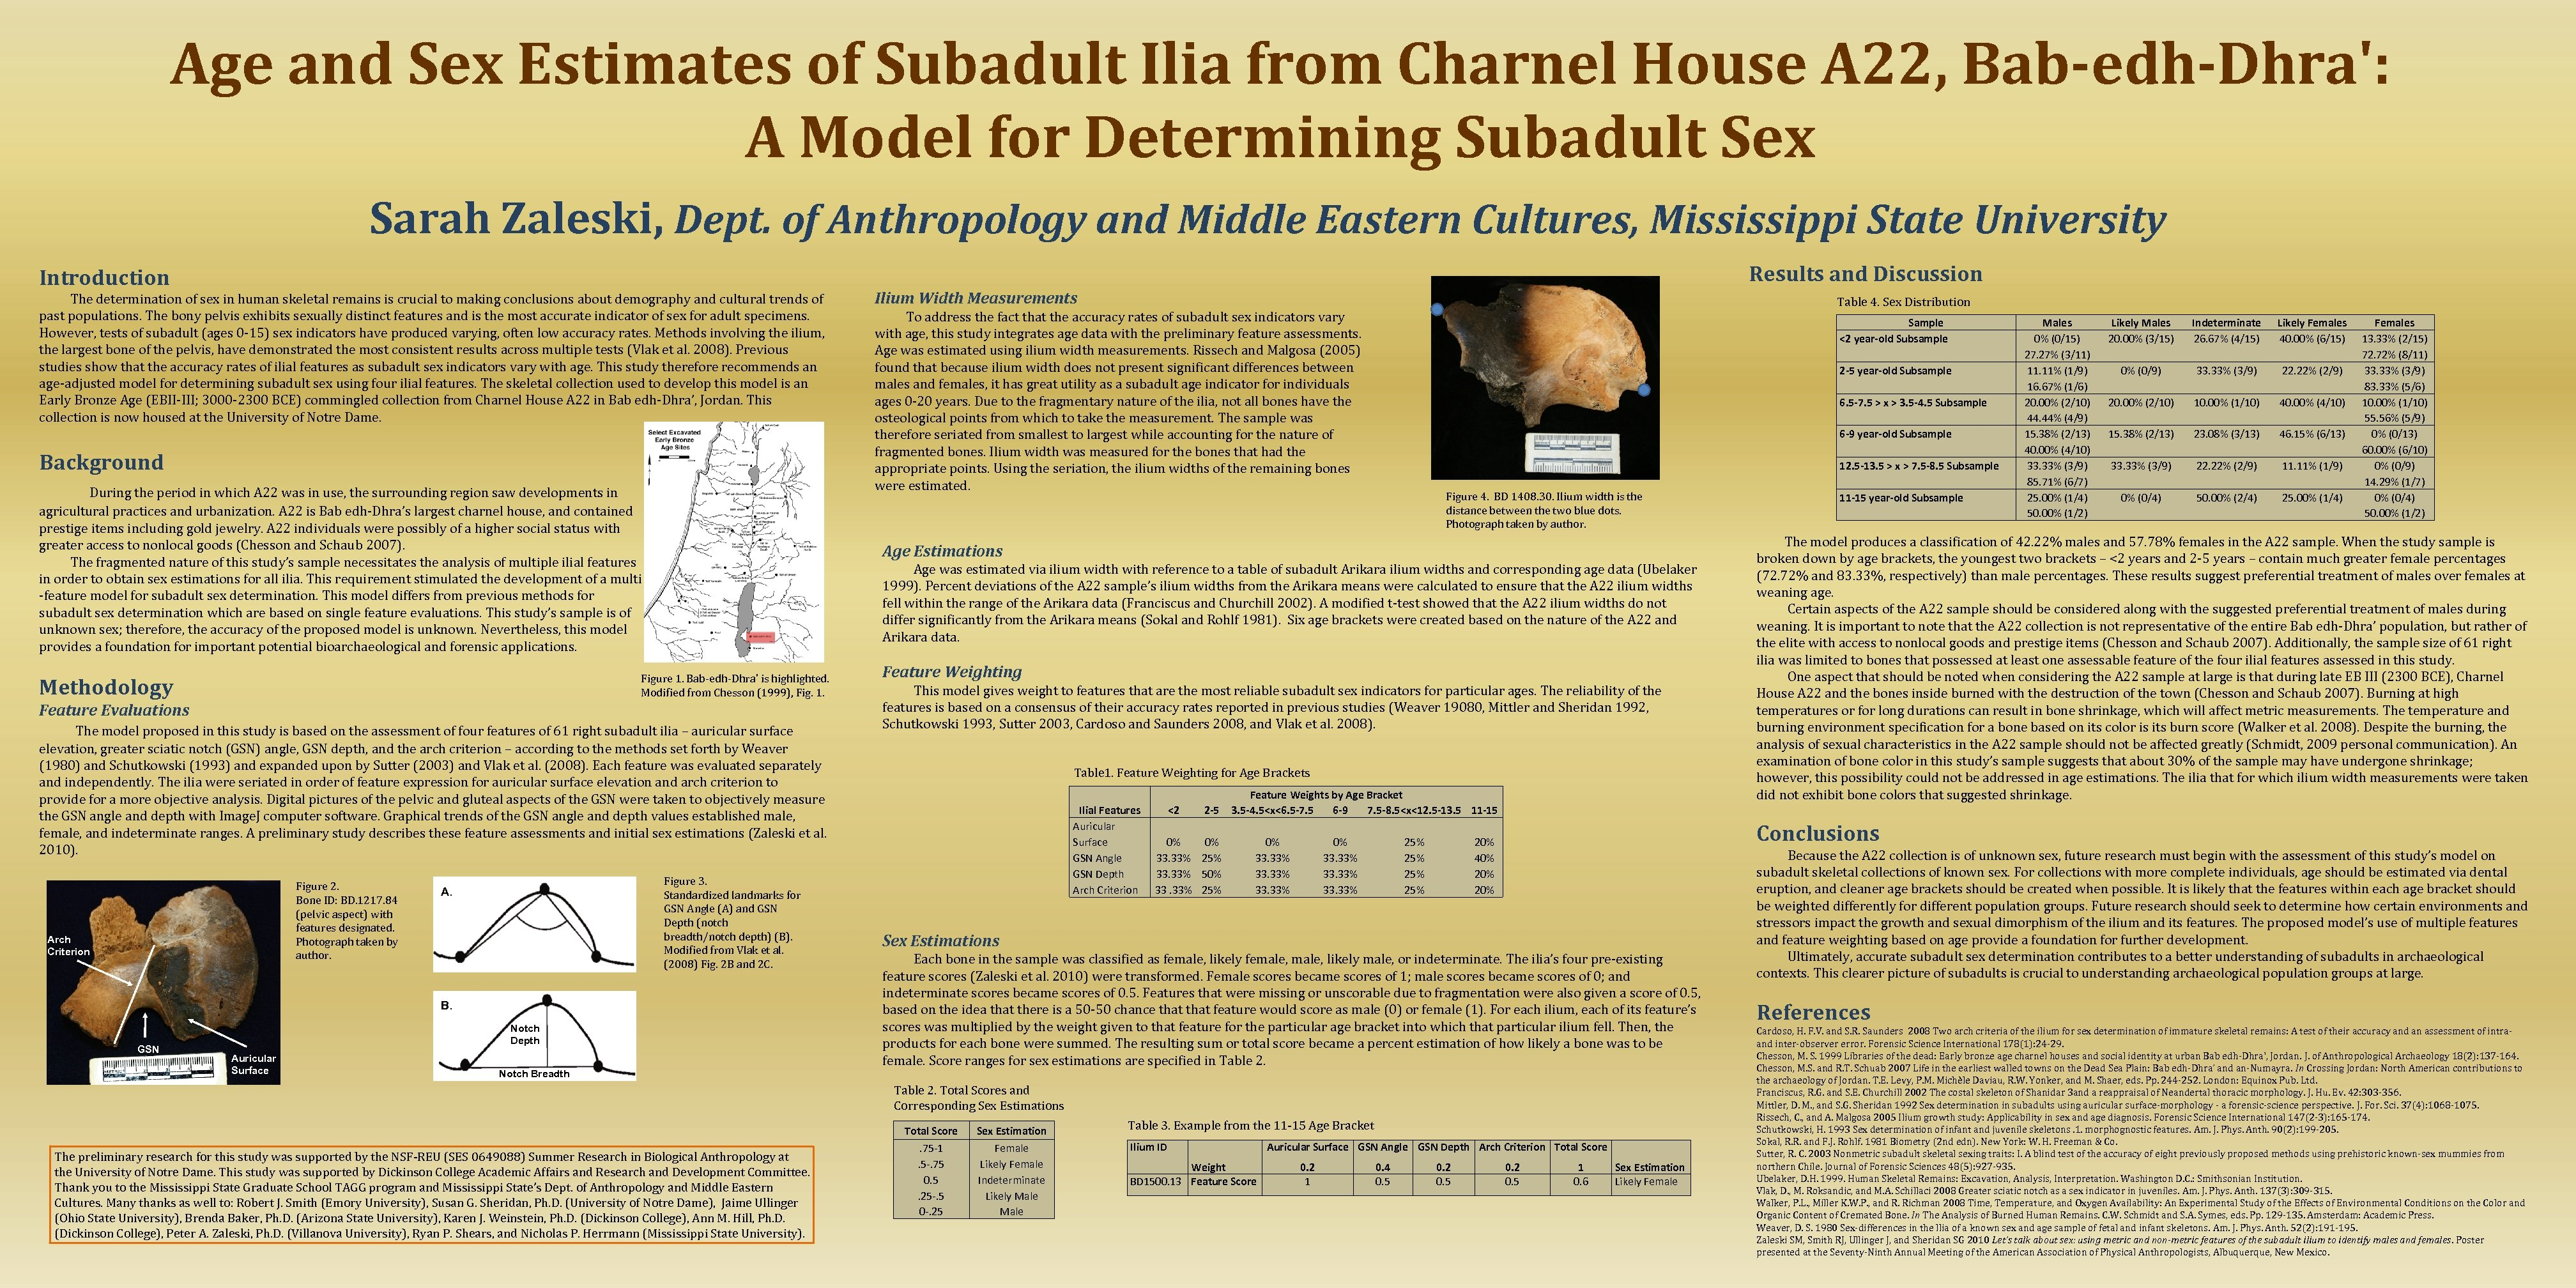 Age and Sex Estimates of Subadult Ilia from Charnel House A 22, Bab-edh-Dhra': A